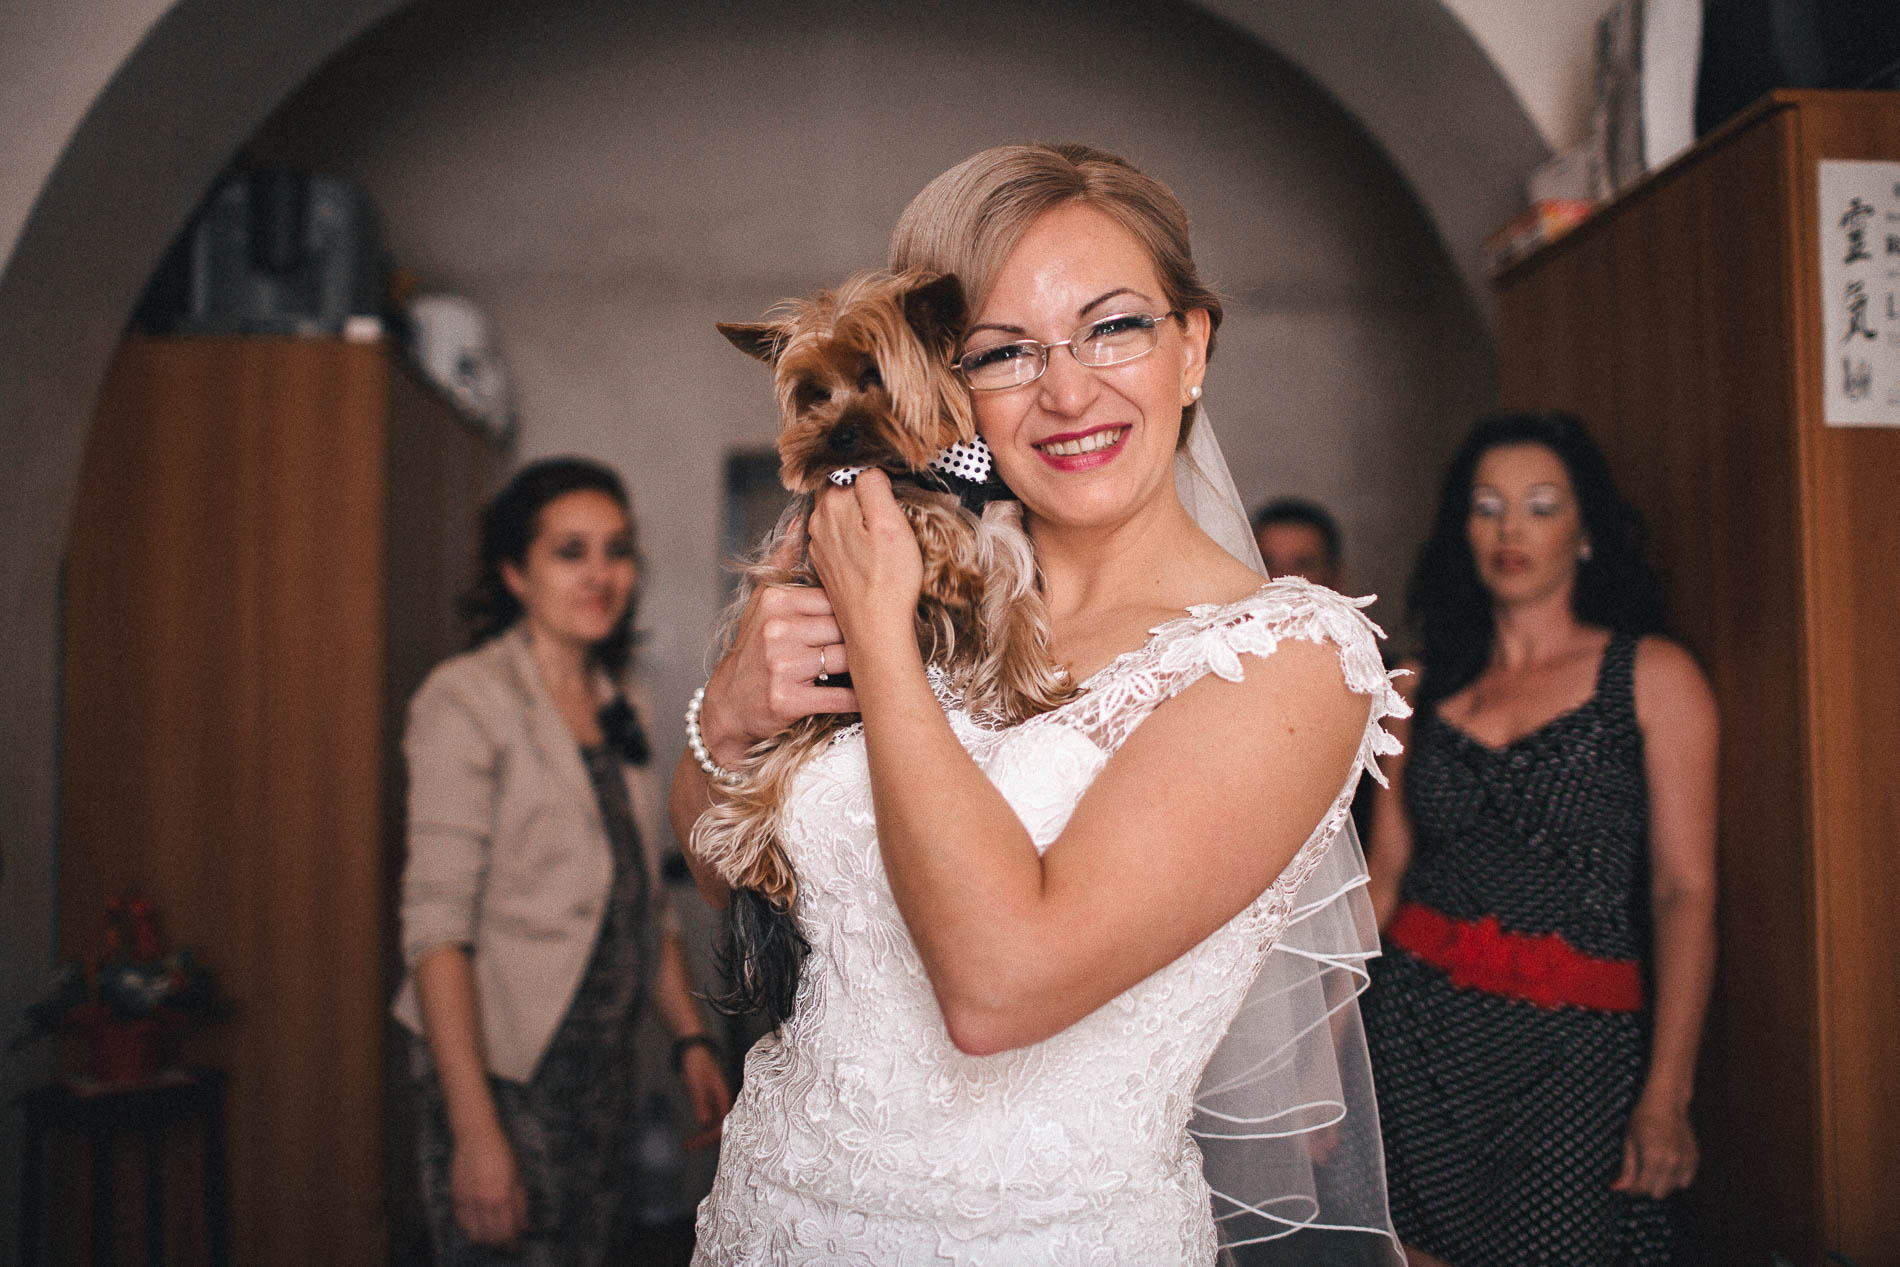 tirgu mures christian women dating site Download 90 1652 stock photos for free or amazingly low rates new users enjoy 60% off 76,941,850 stock photos online.